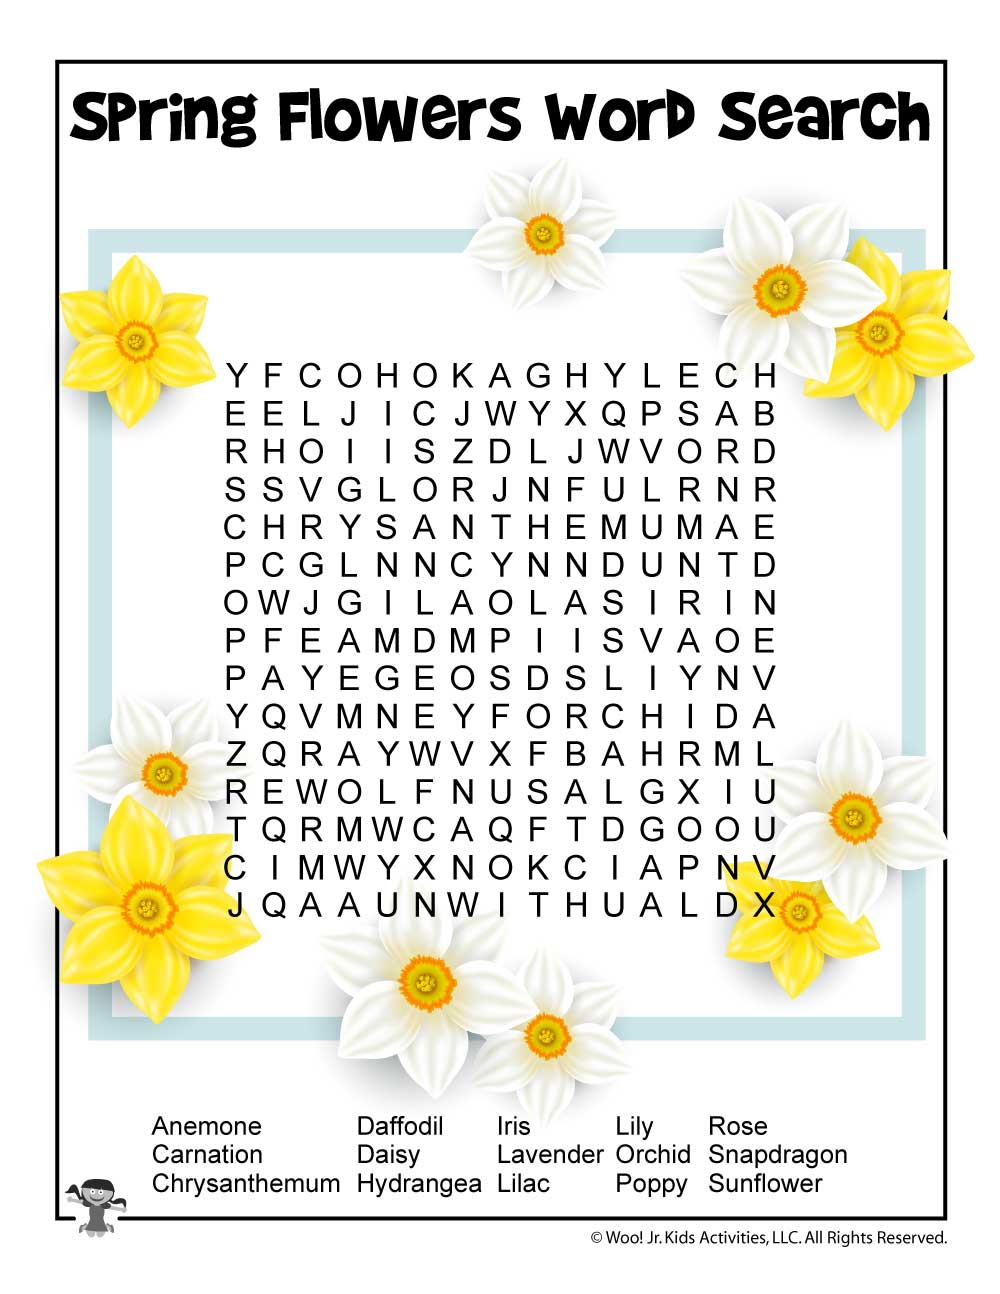 graphic regarding Free Printable Spring Word Search named Phrase Appear Spring Bouquets - Bouquets Wholesome